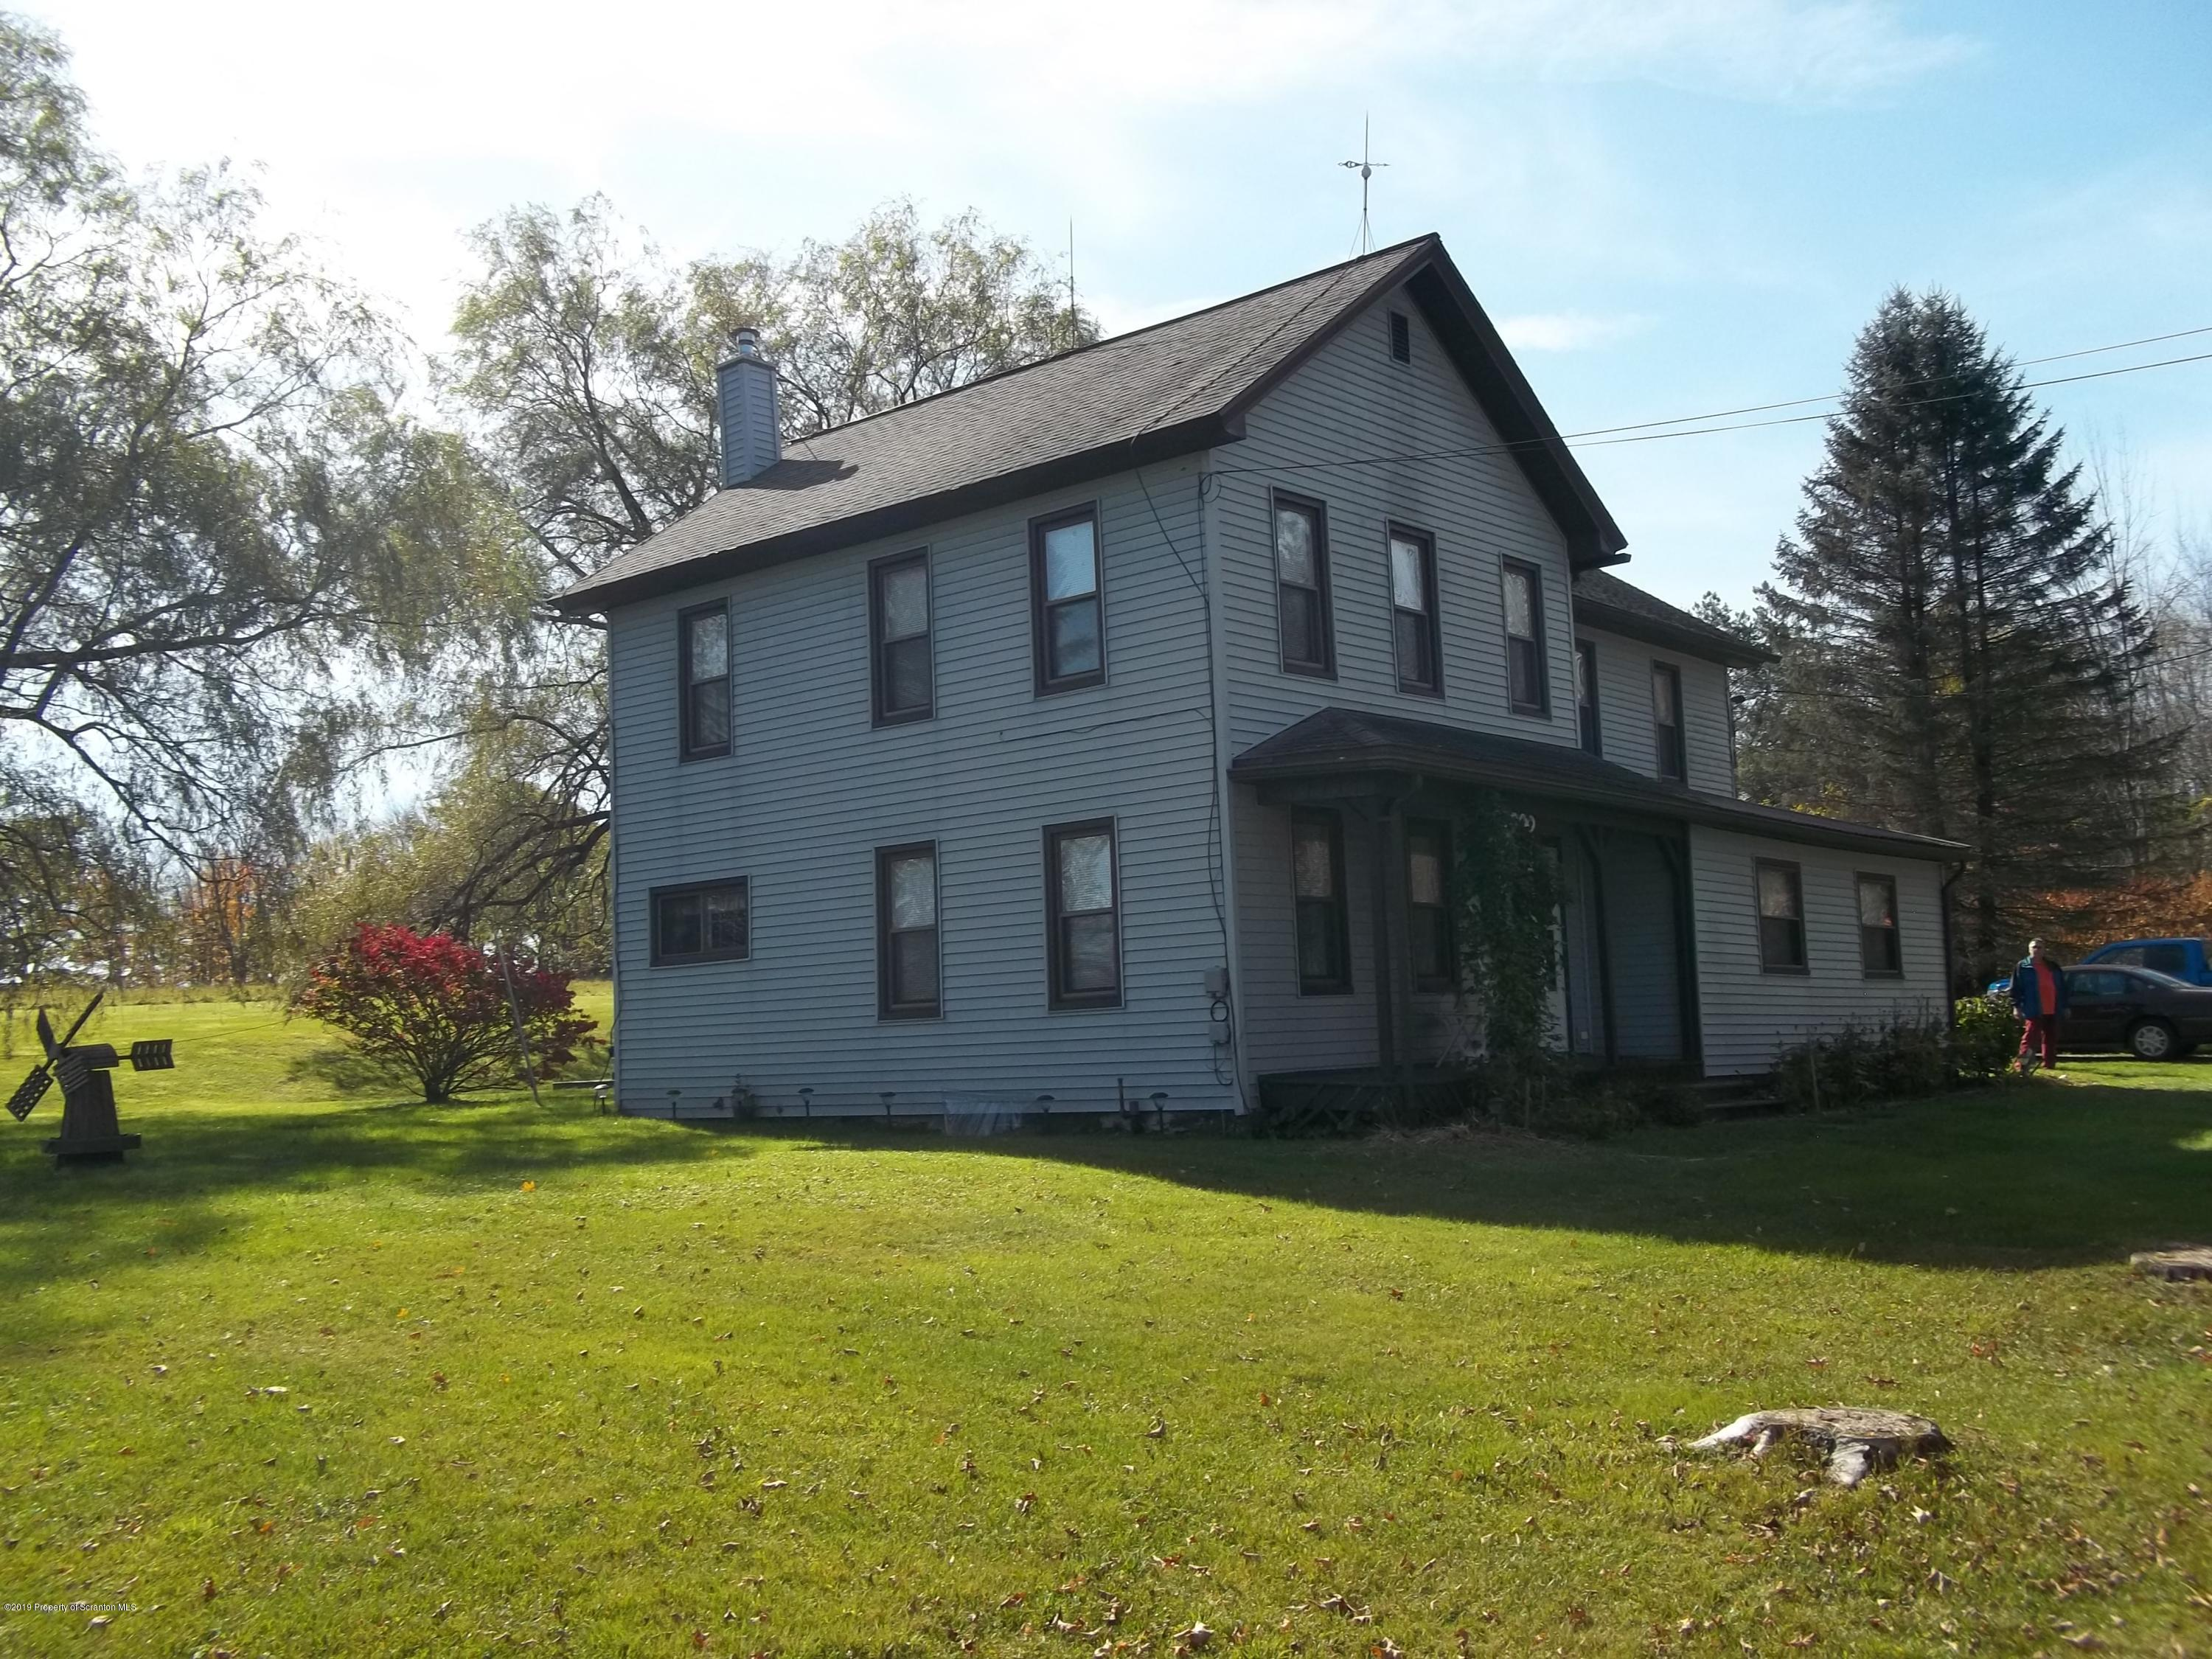 4846 Little Ireland Road, Starrucca, Pennsylvania 18462, 5 Bedrooms Bedrooms, 9 Rooms Rooms,1 BathroomBathrooms,Single Family,For Sale,Little Ireland Road,19-4983